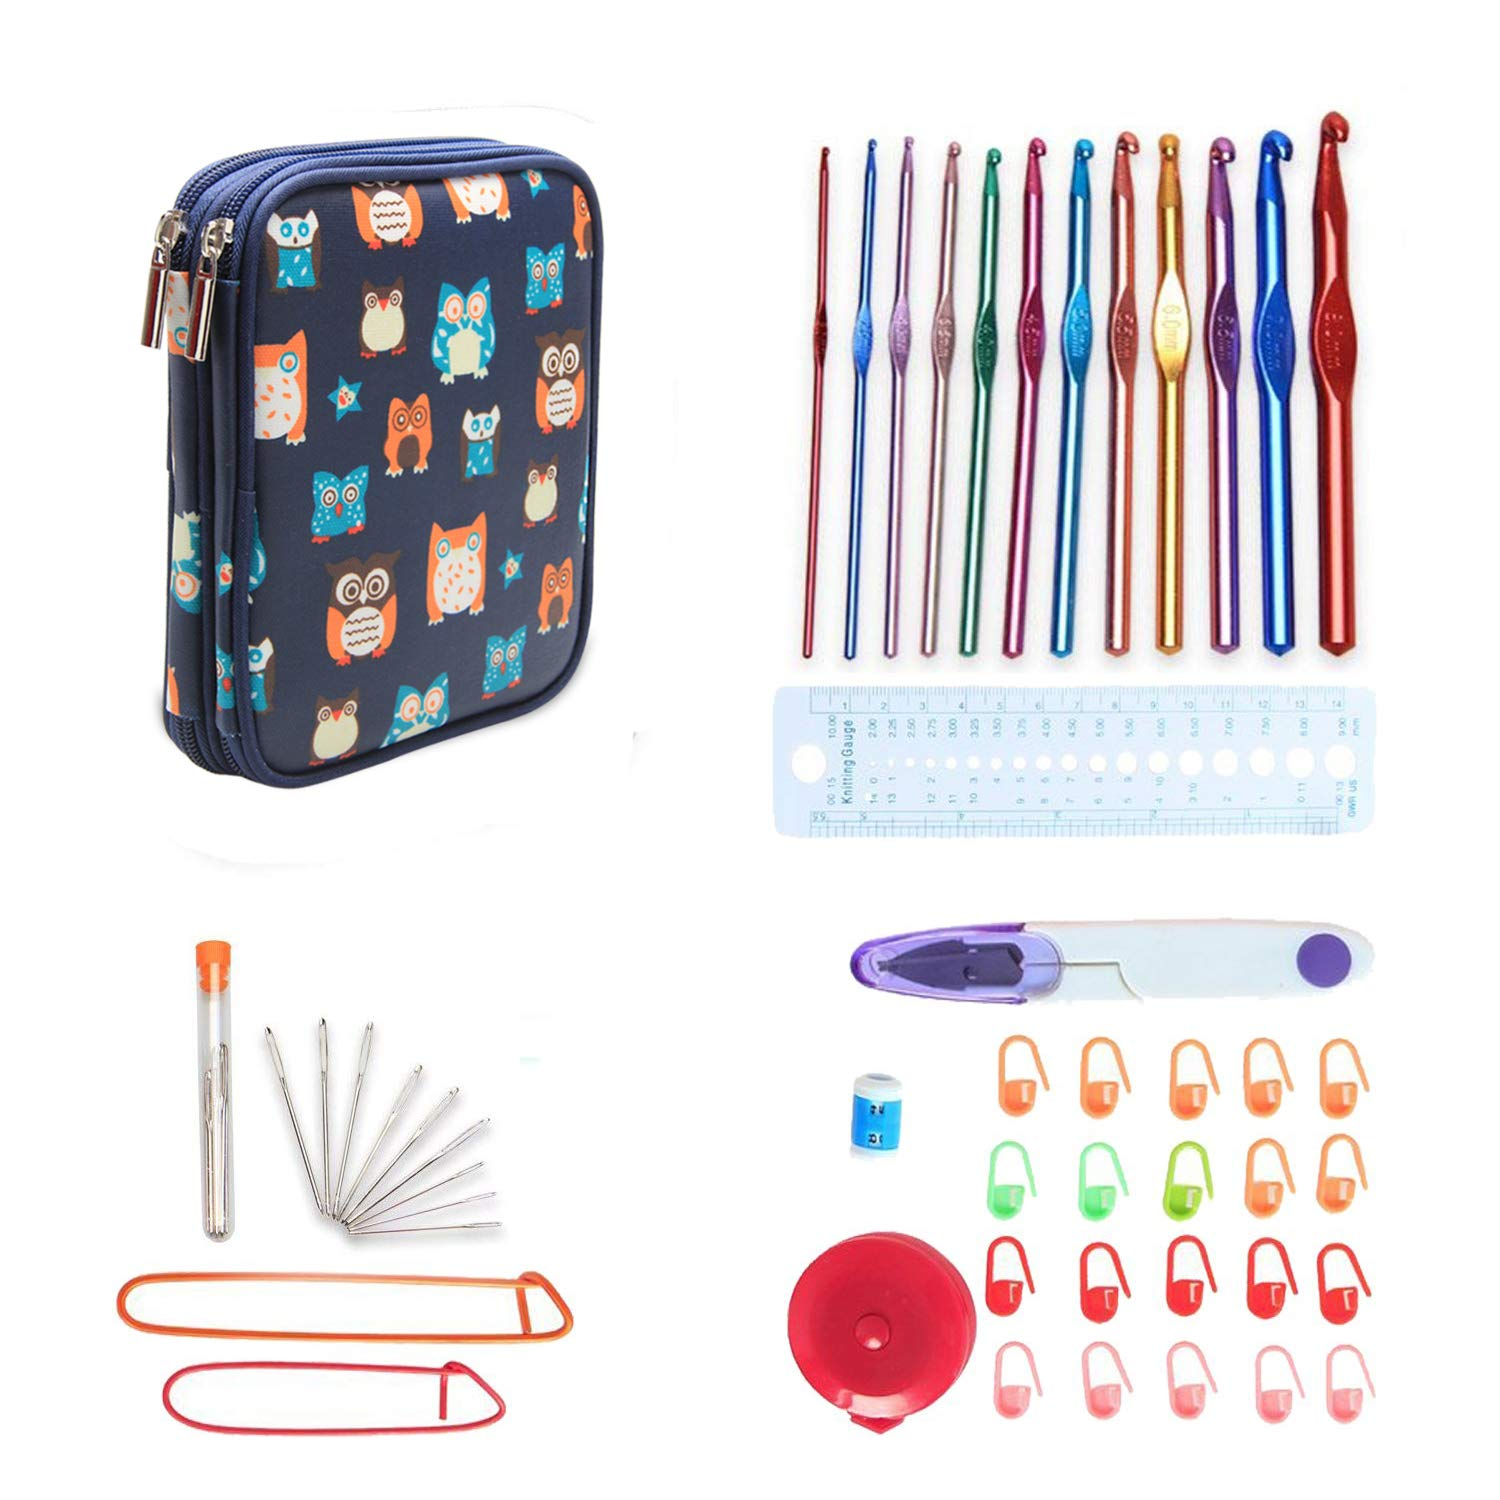 Teamoy Aluminum Crochet Hooks Set, Knitting Needle Kit, Organizer Carrying Case with 12pcs 2mm to 8mm Hooks and Complete Accessories, All in One Place and Easy to Carry, Owls